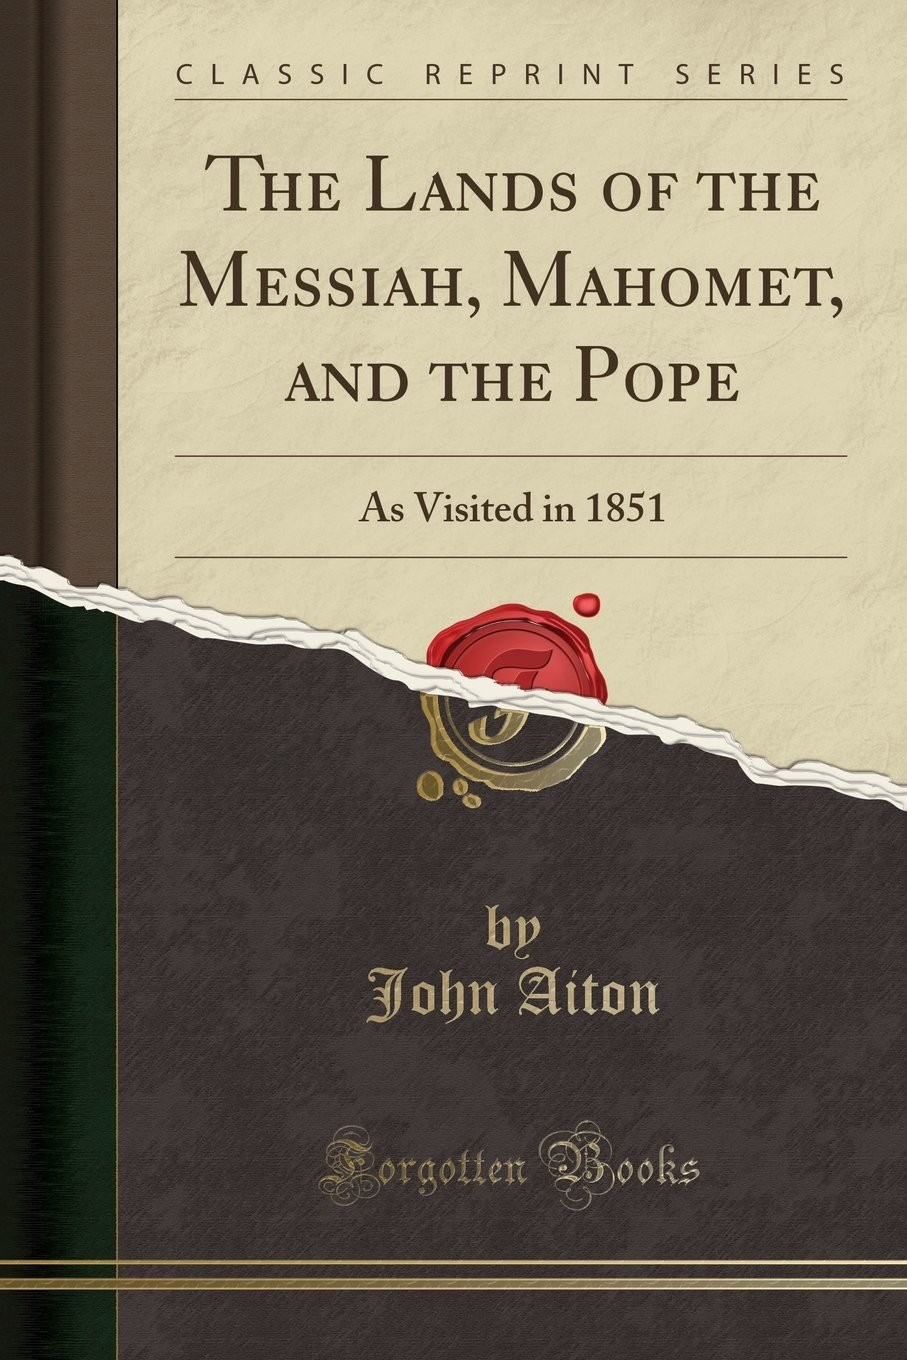 The Lands of the Messiah, Mahomet, and the Pope: As Visited in 1851 (Classic Reprint) pdf